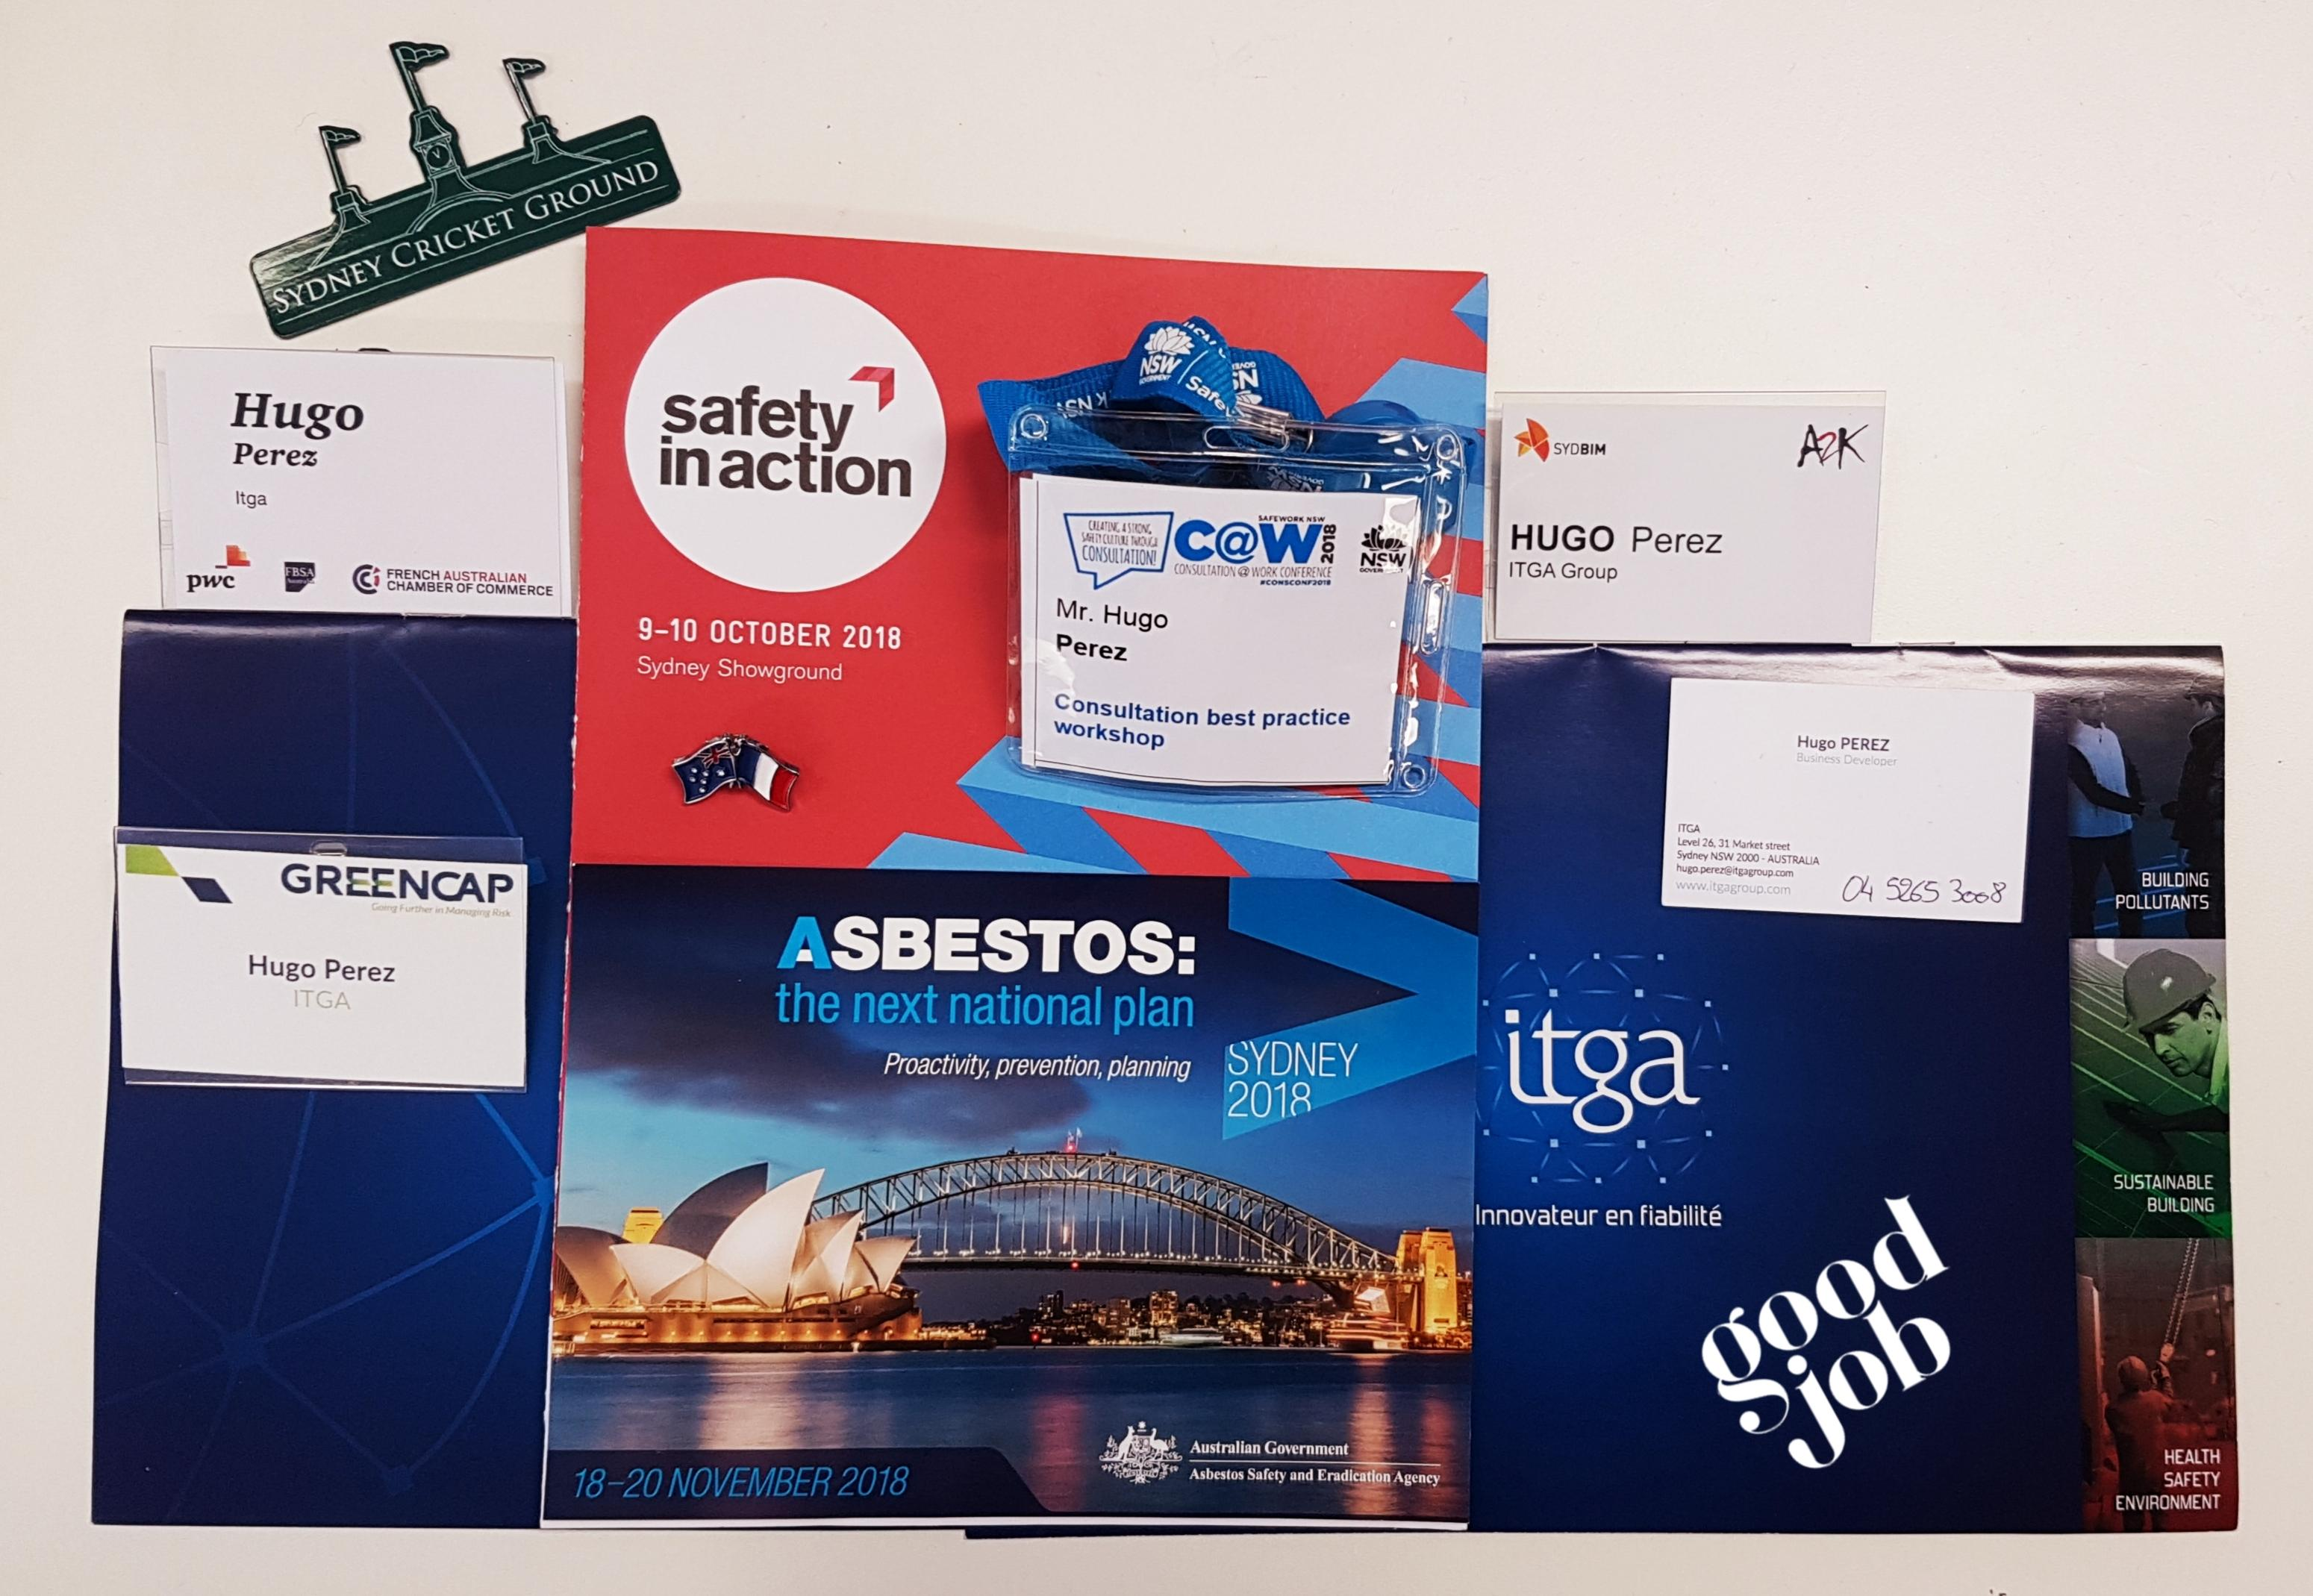 One month already completed with ITGA Group